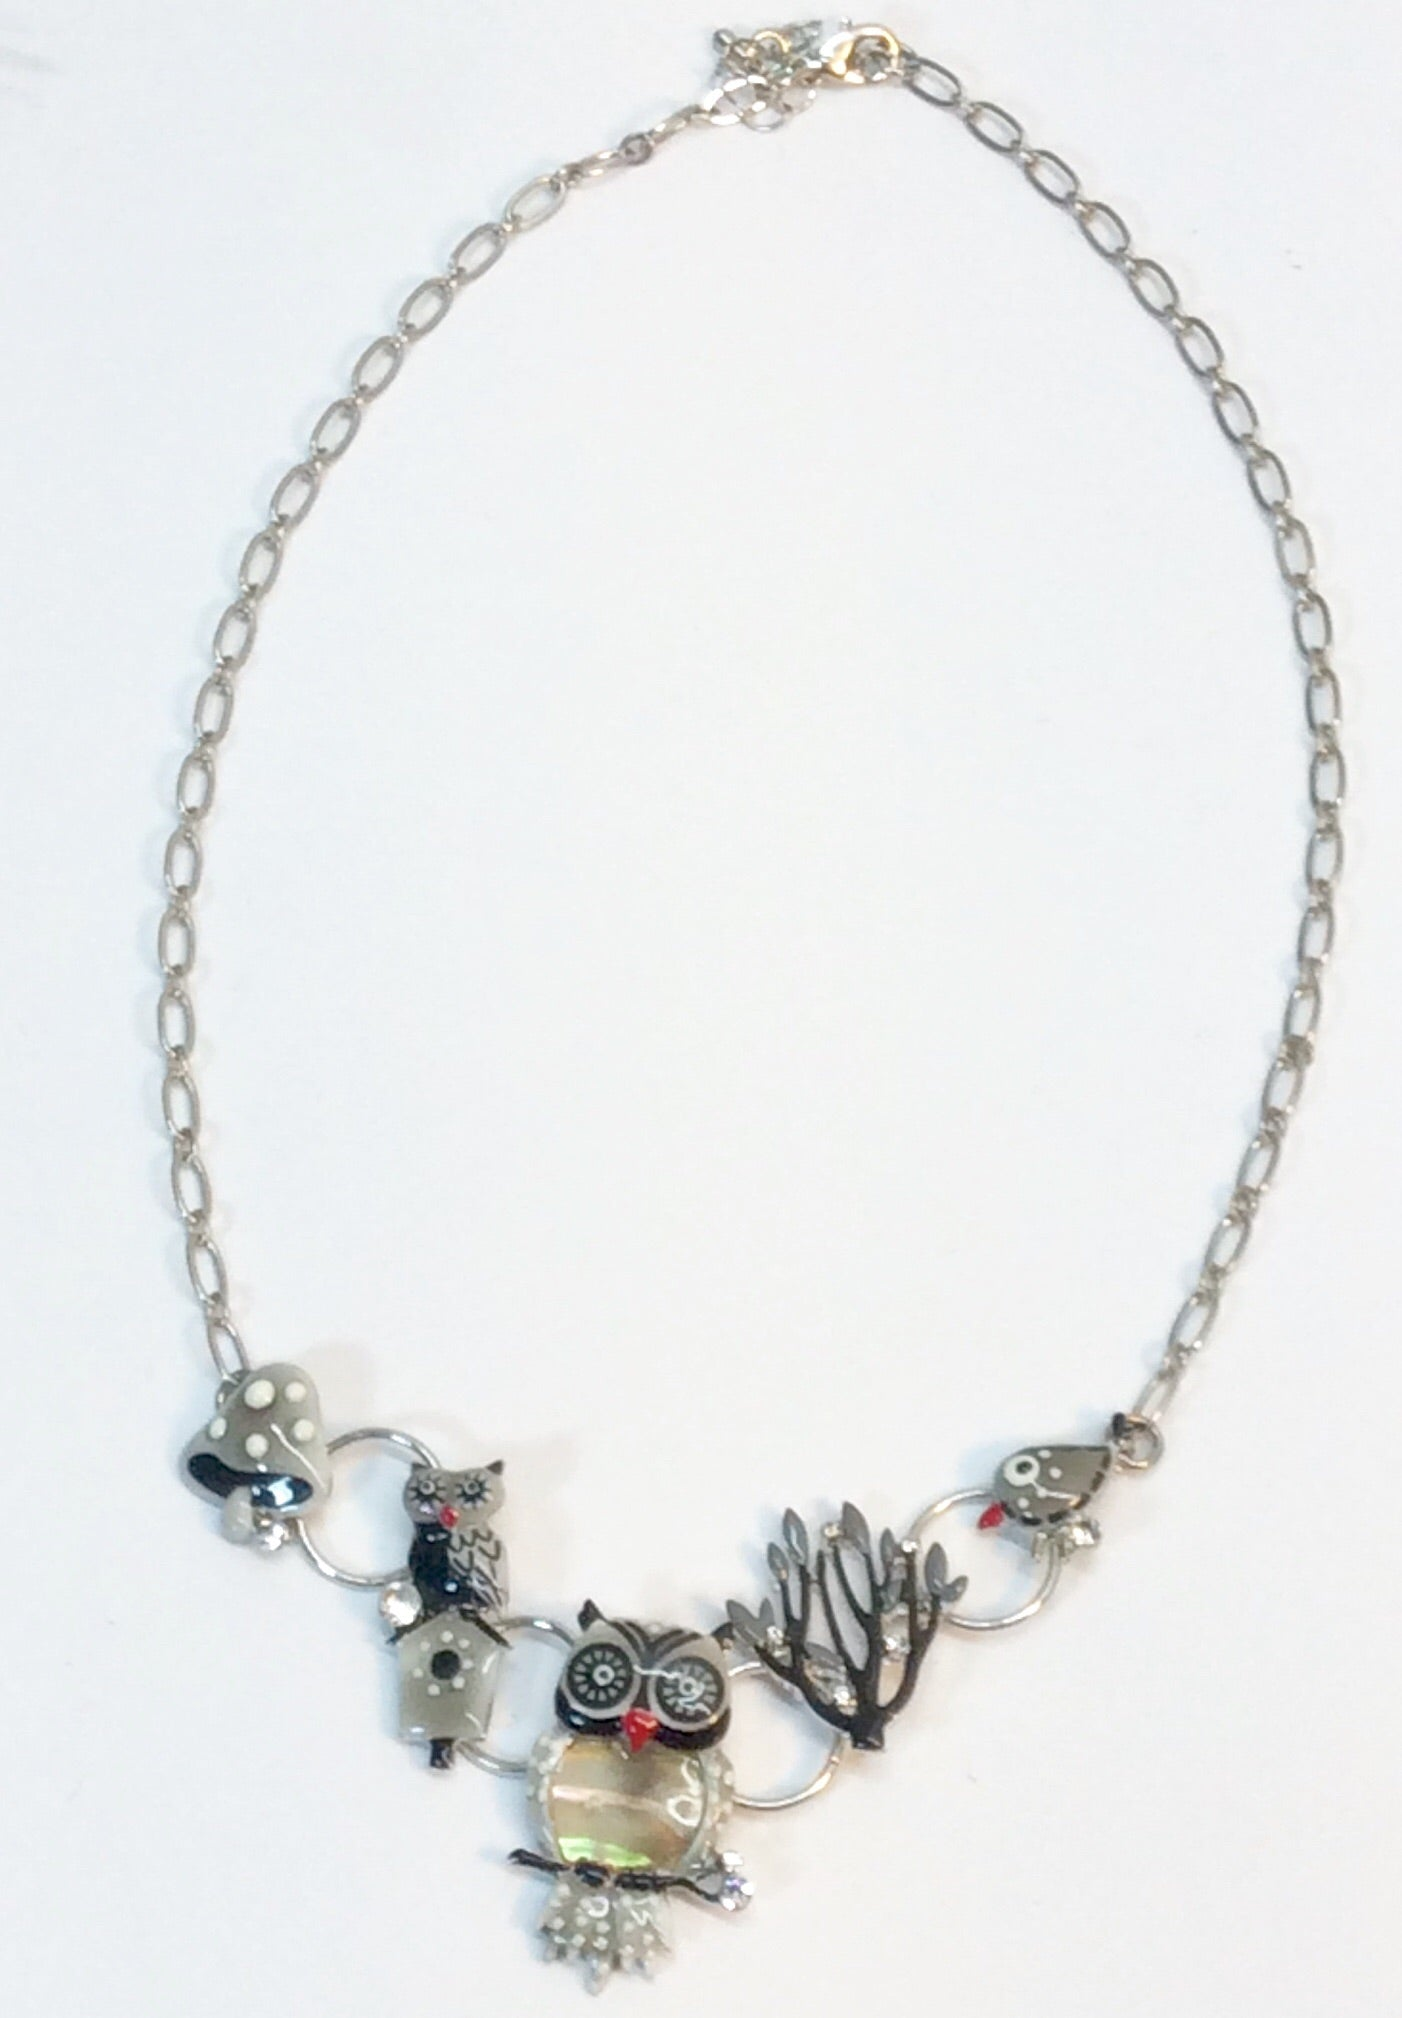 Charming owl and pussycat necklace